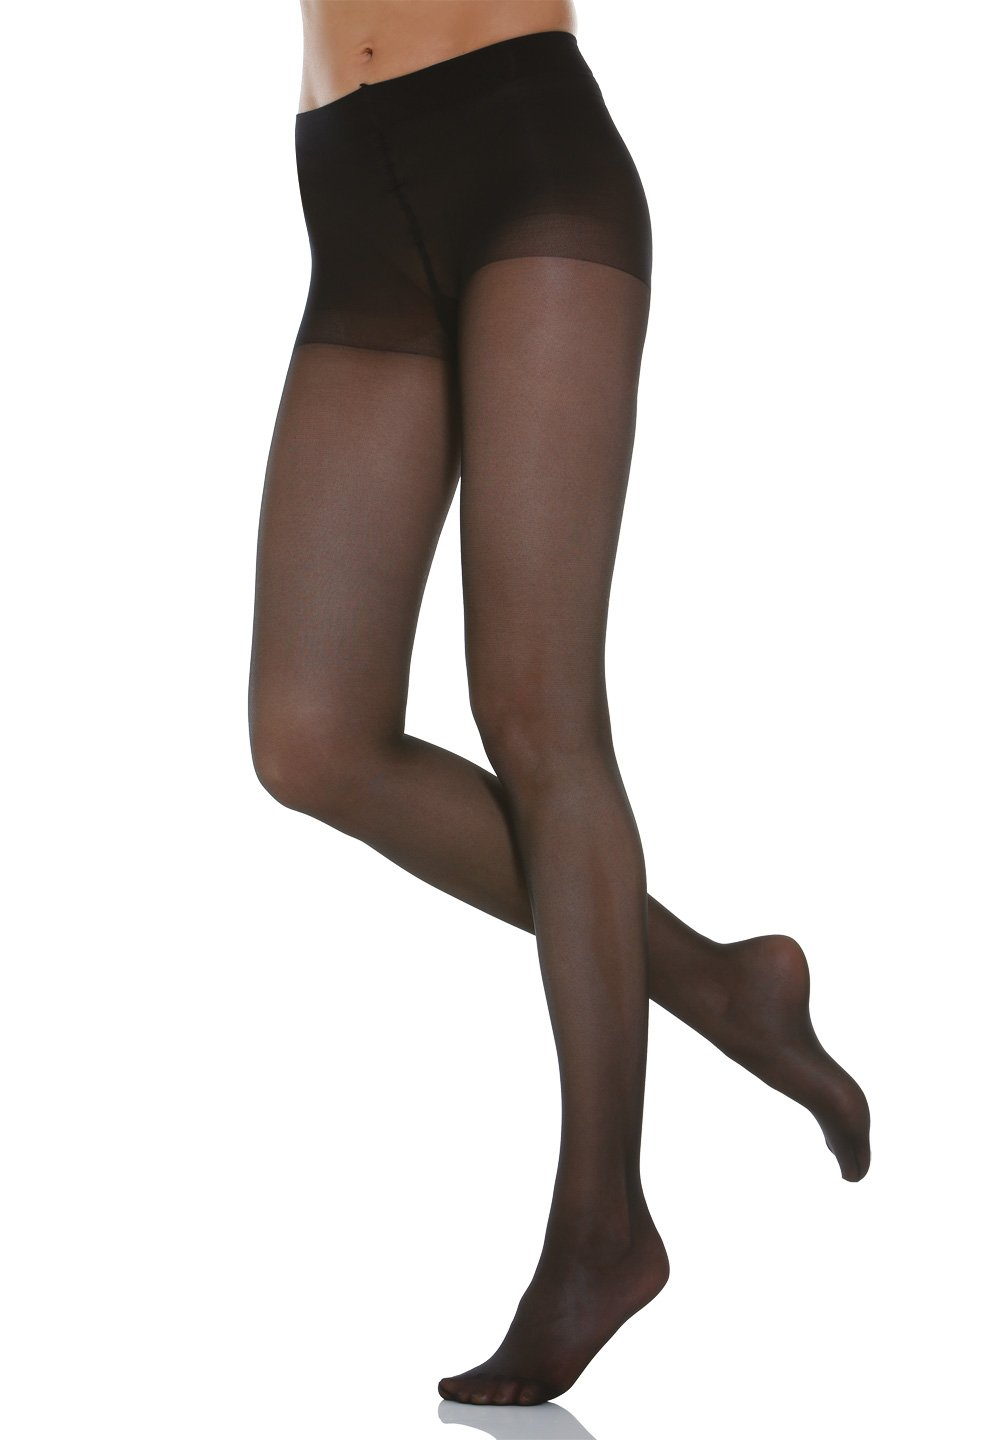 Alpha Medical 8-15 mmHg Compression Pantyhose, Graduated Compression & Support Hosiery Fine Italian Made Fashionable Sheer Stockings (Size 3 Black)